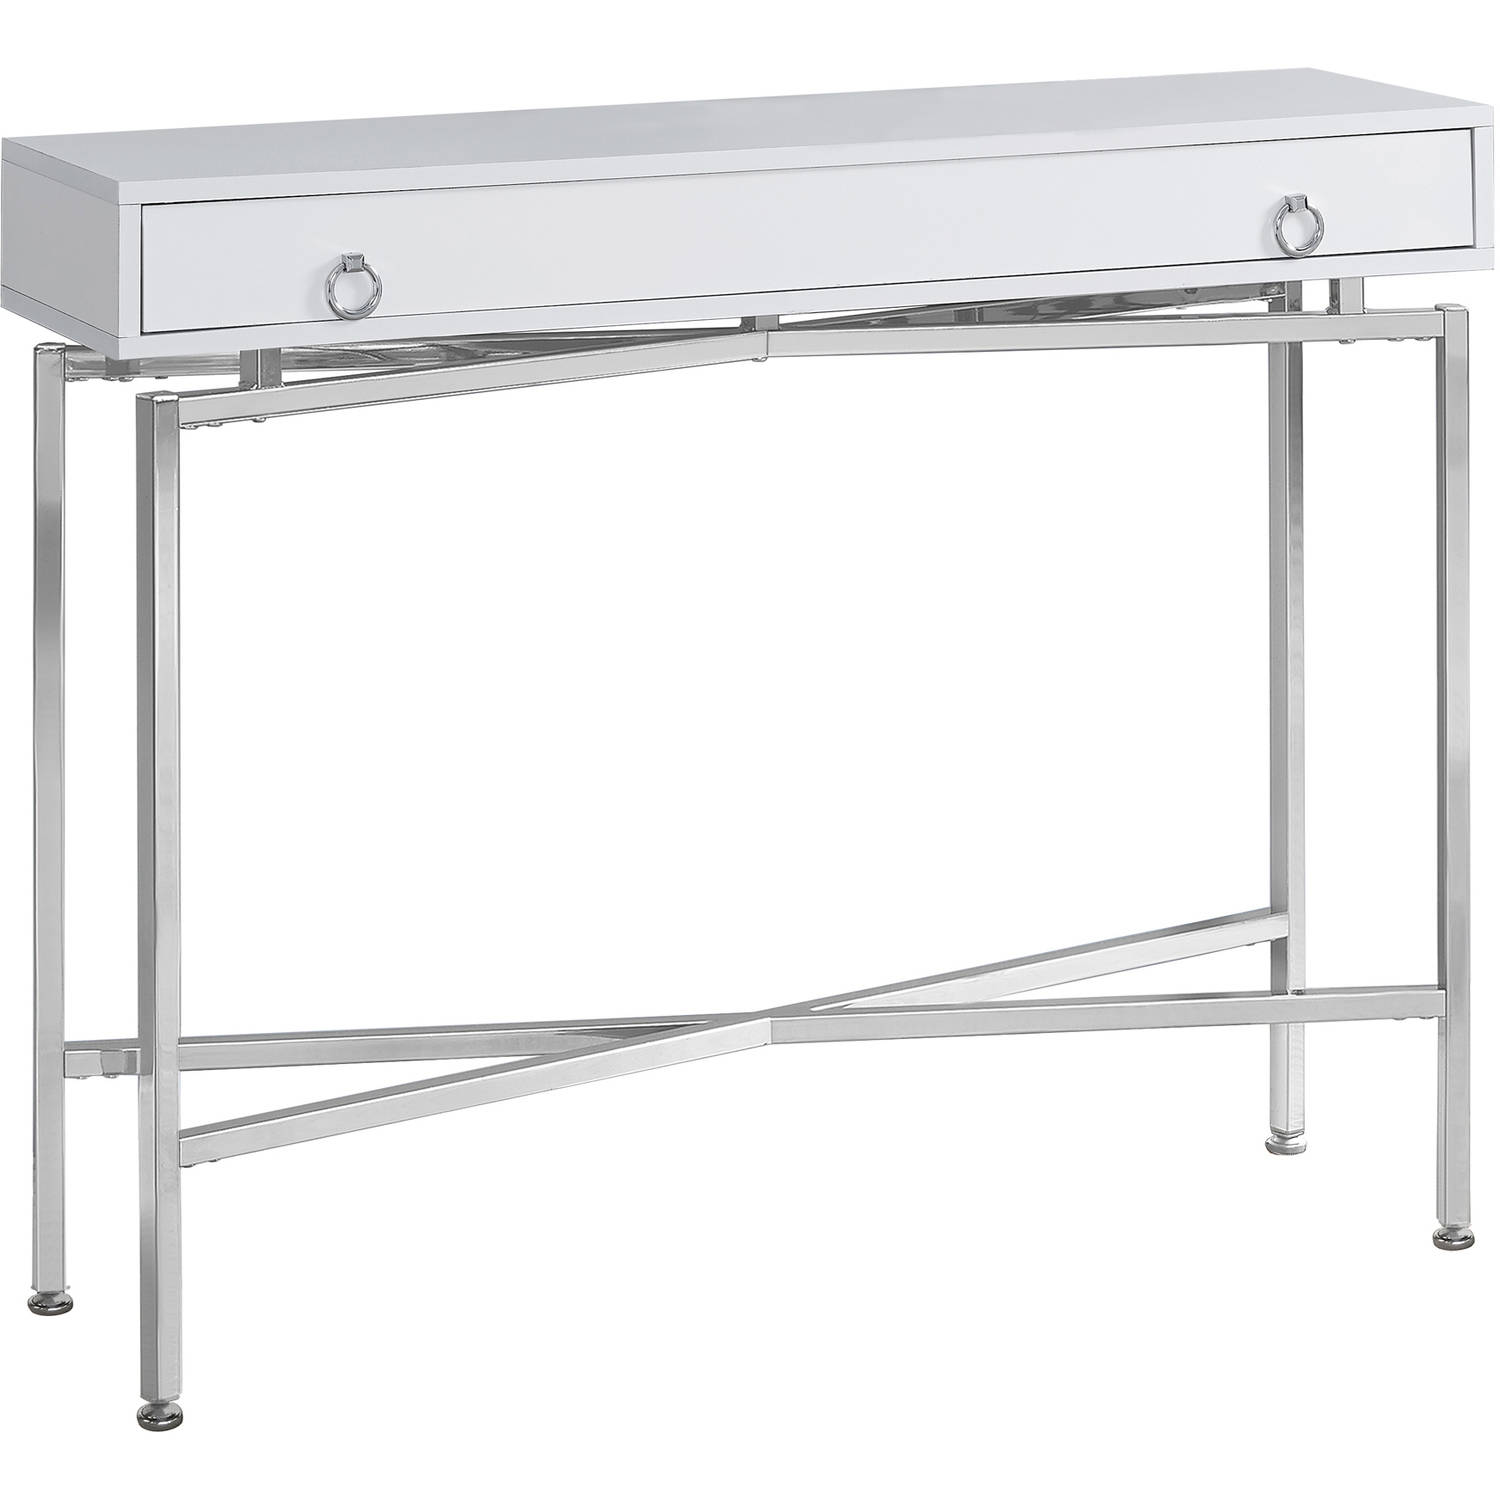 "Monarch Accent Table 42""L   Glossy White   Chrome Hall Console by Monarch Specialties"